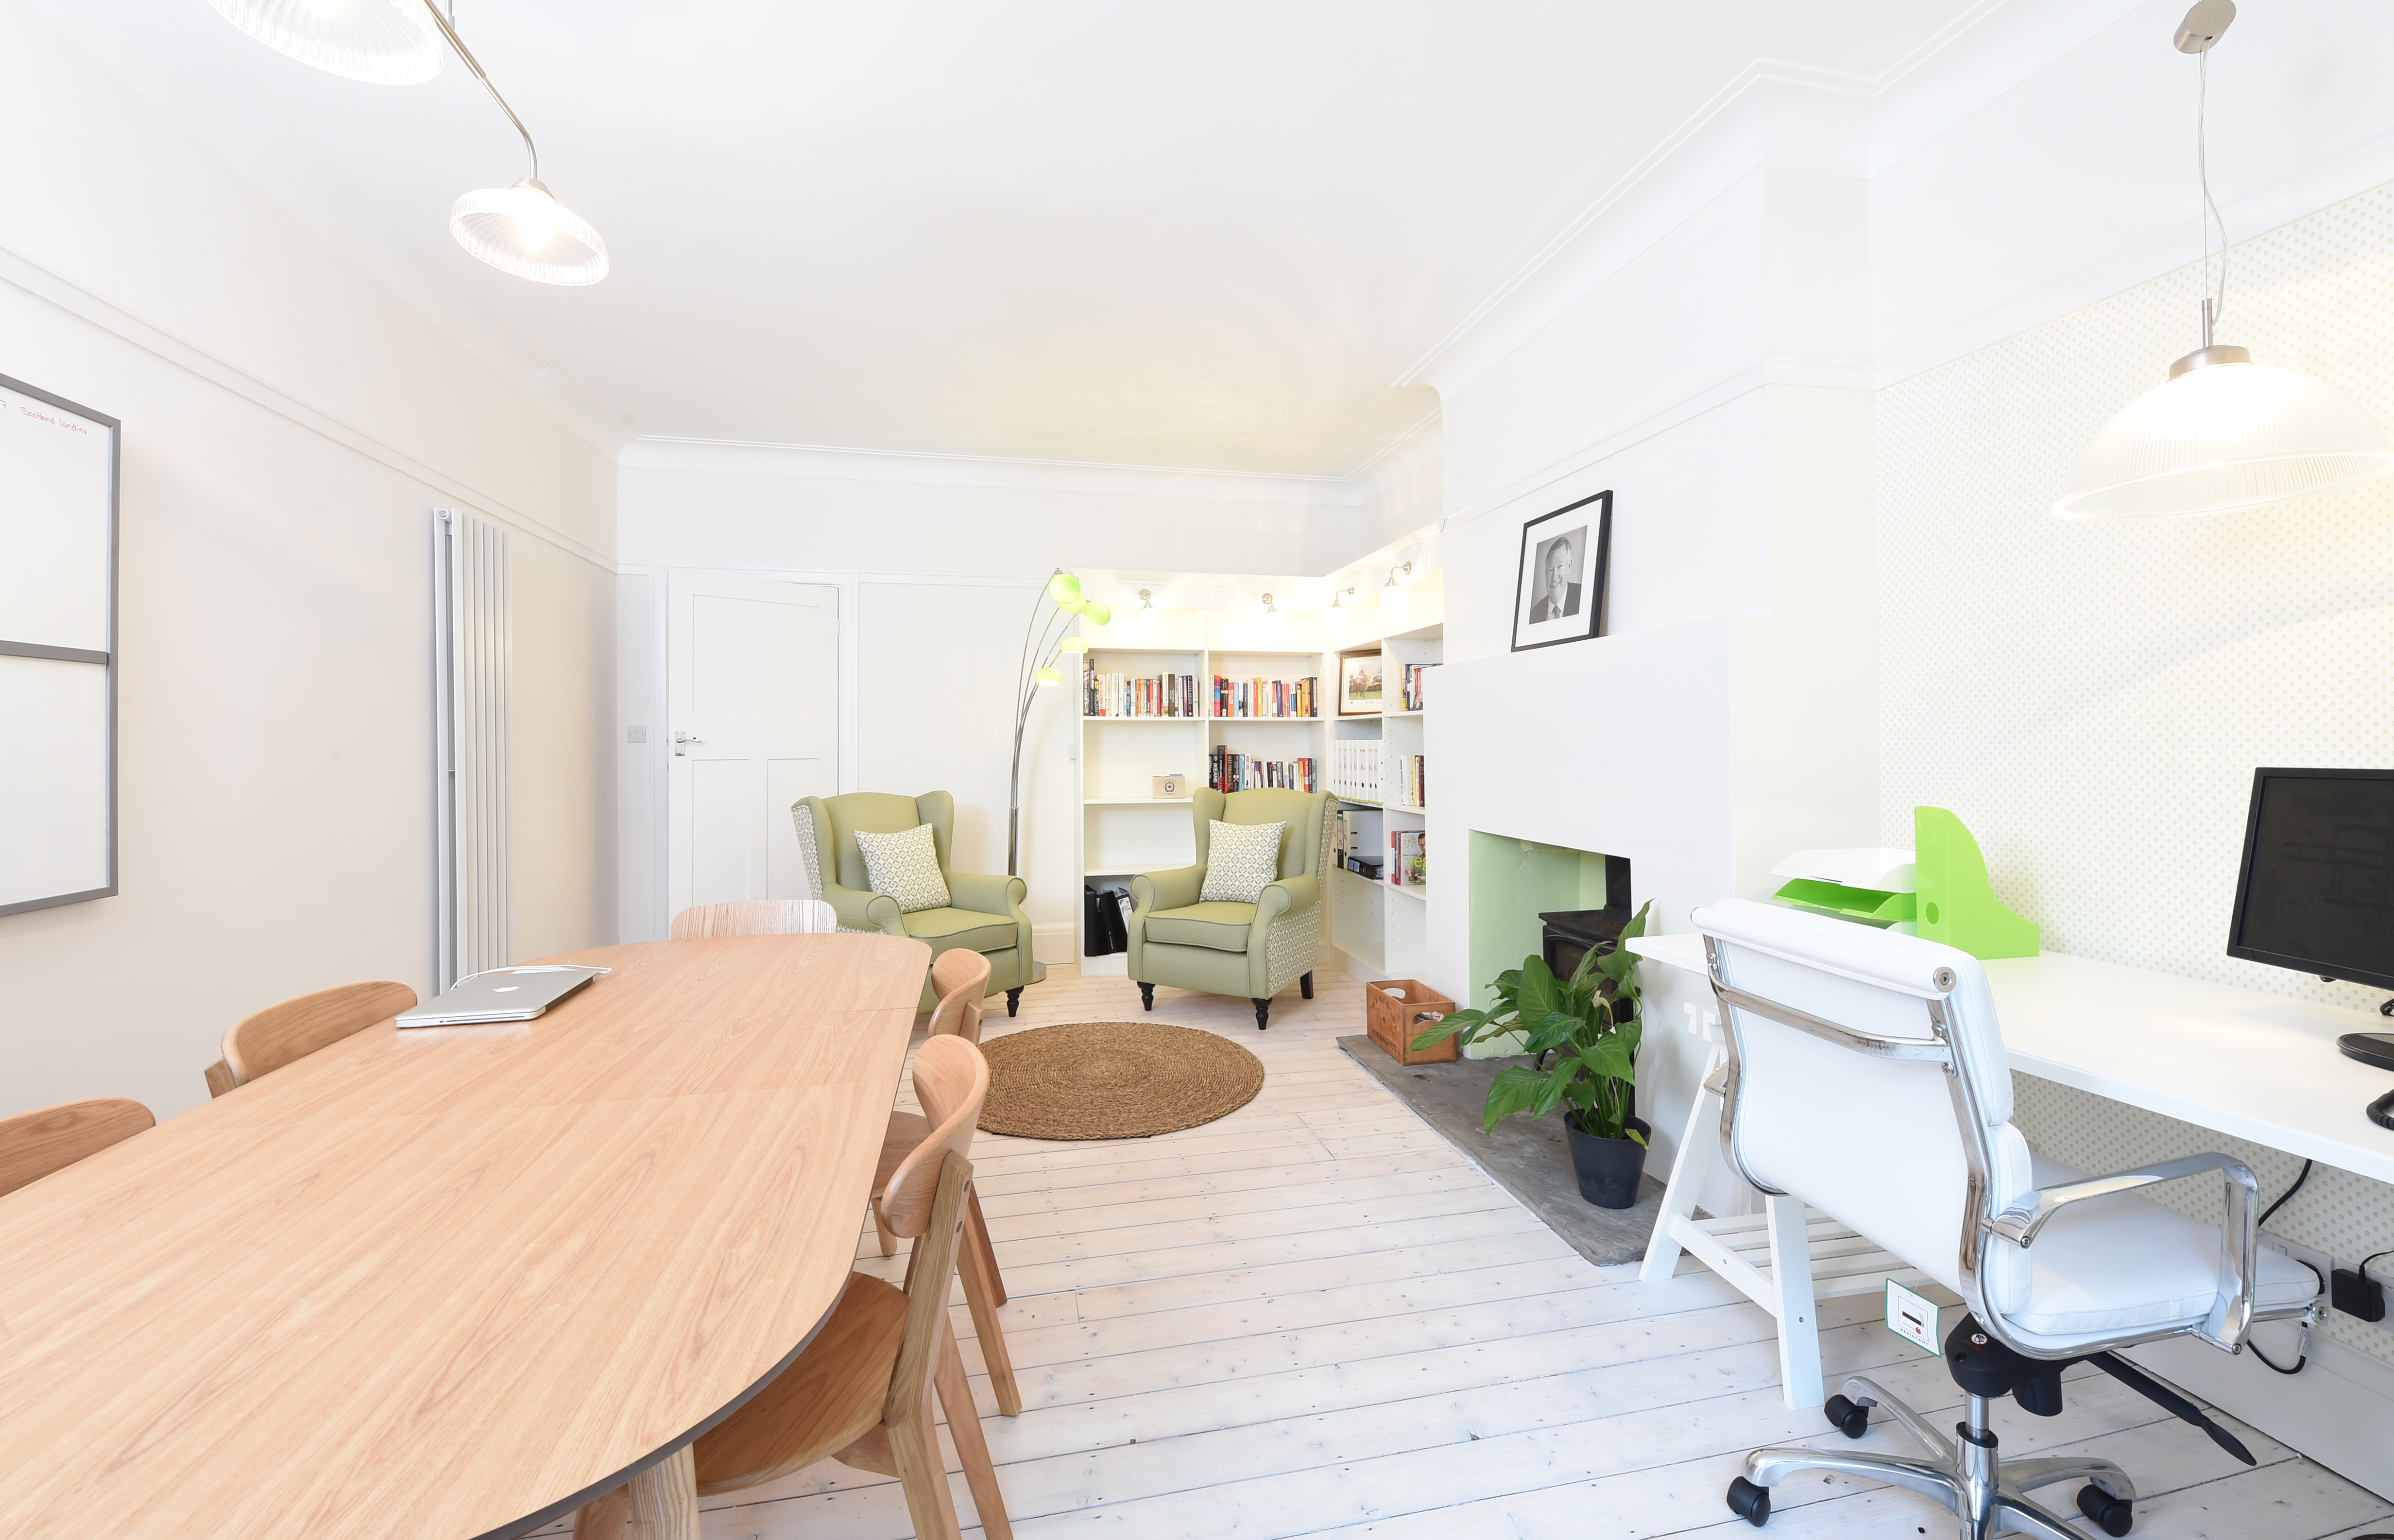 hannah barnes interior designs home office interior in manchester